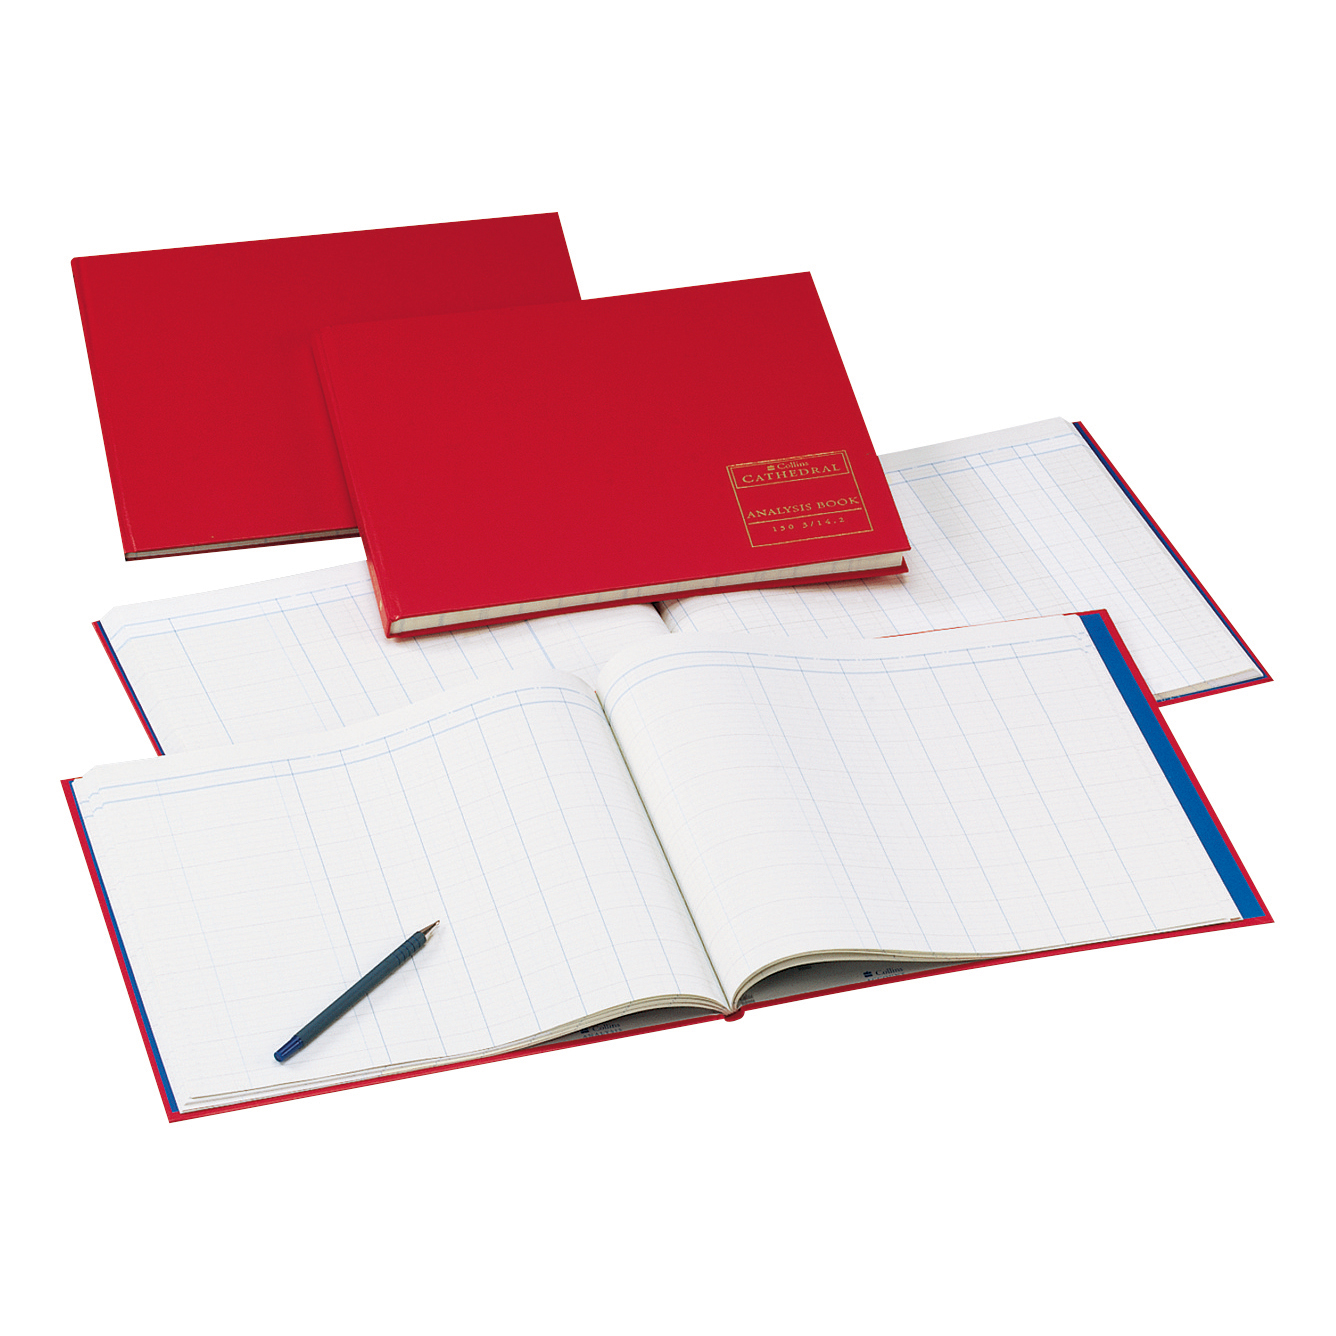 Accounts Binders & Refills Collins Cathedral Analysis Book 150 Series 7 Debit 14 Credit 96 Pages 297x315mm Ref 150/7/14.1